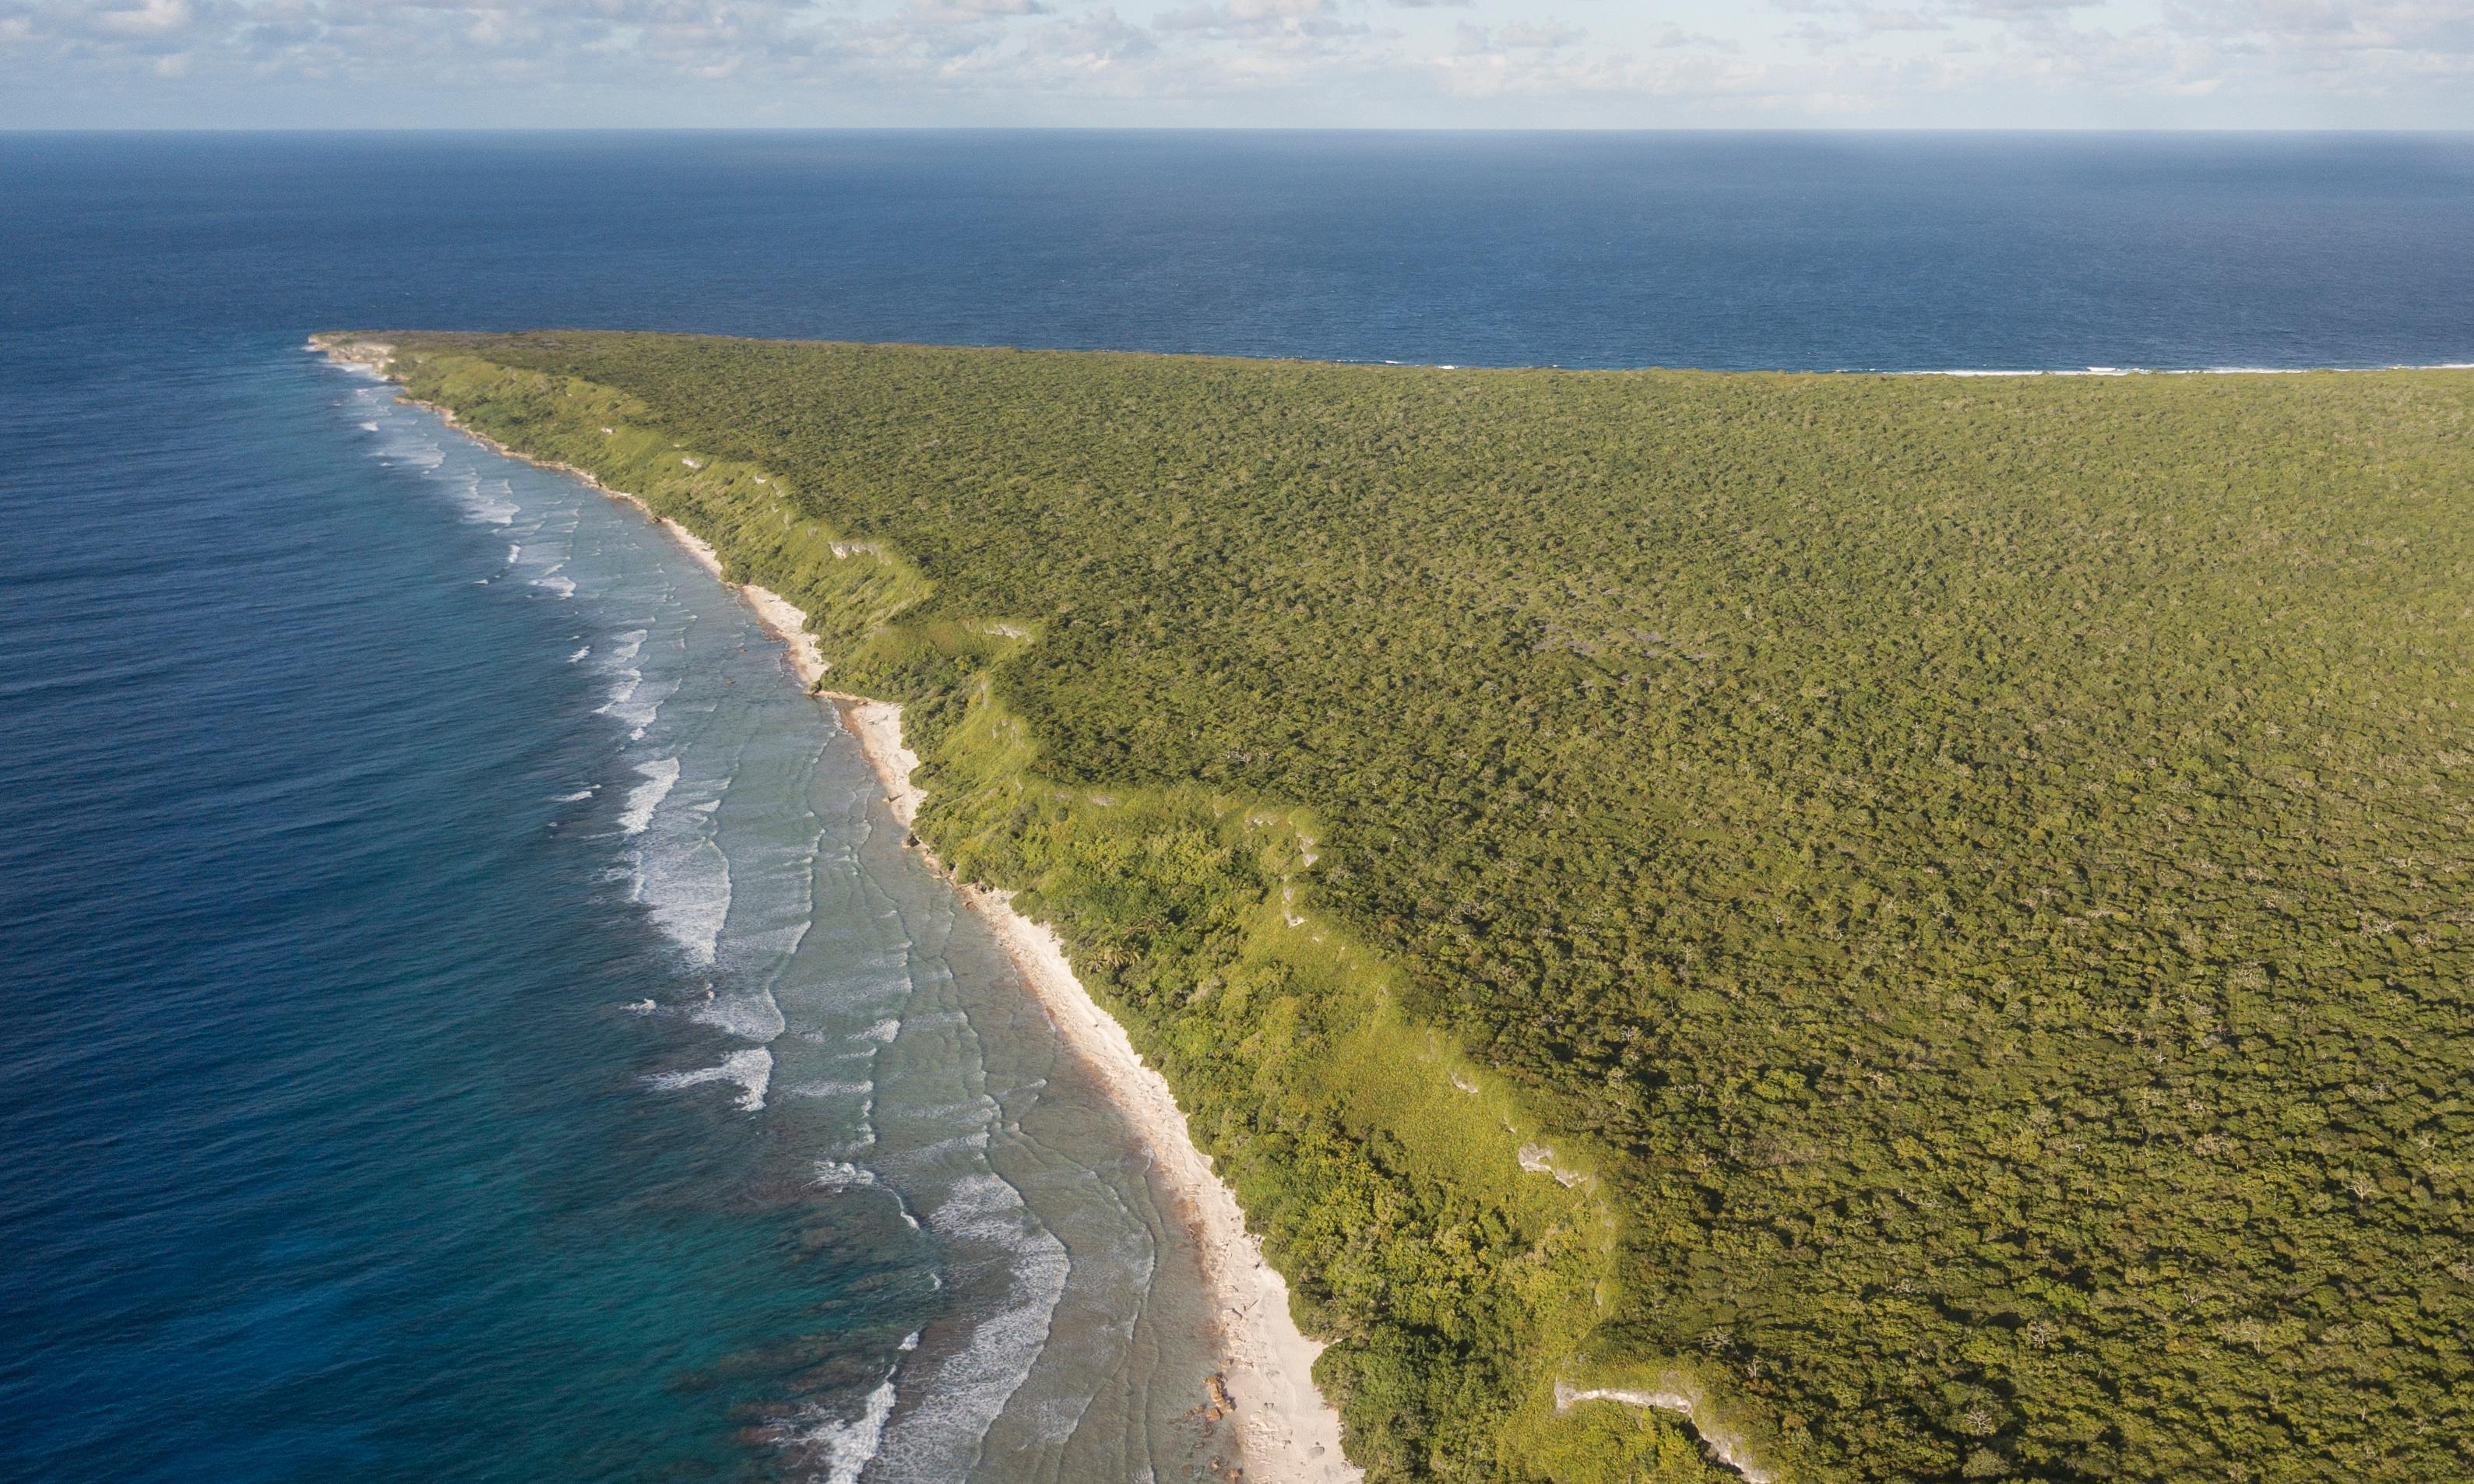 Henderson Island: the Pacific paradise groaning under 18 tonnes of plastic waste